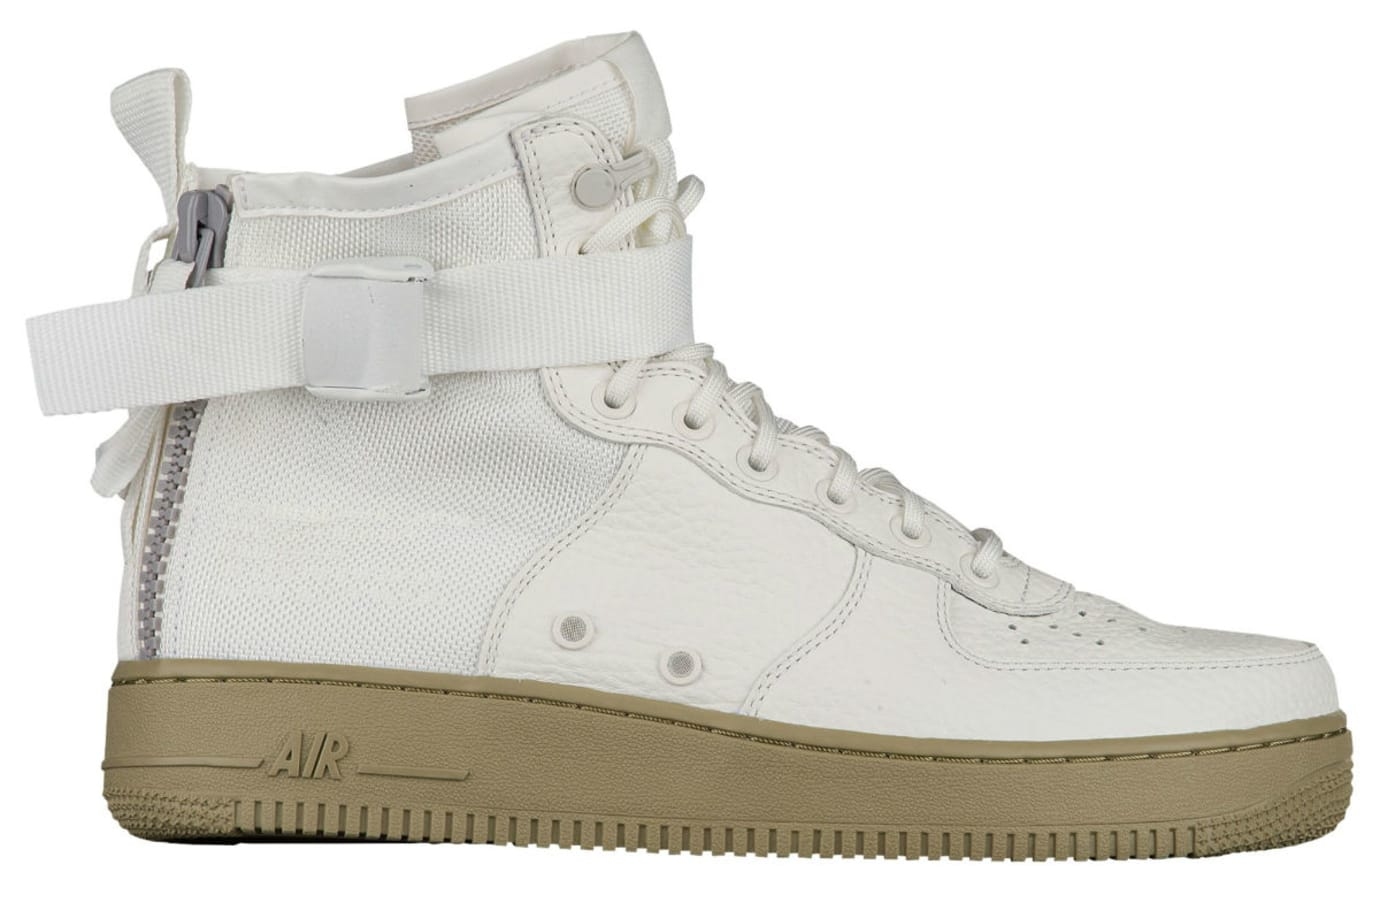 Nike SF Air Force 1 Mid Ivory Neutral Release Date Profile 917753-101